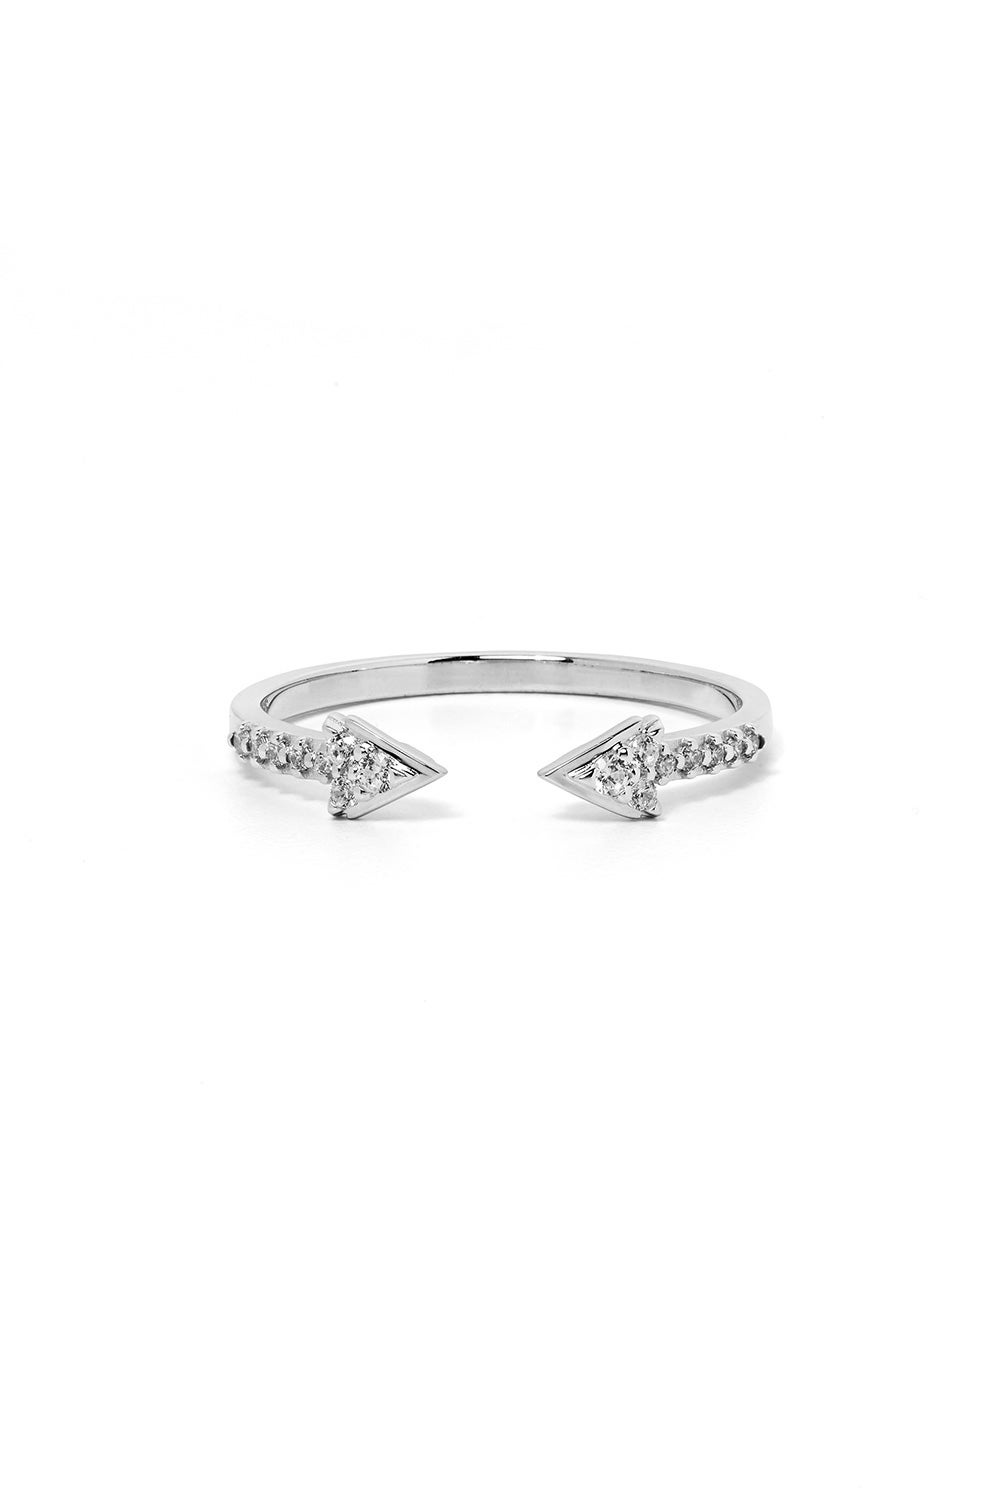 Forever Band, White Gold, White Diamond